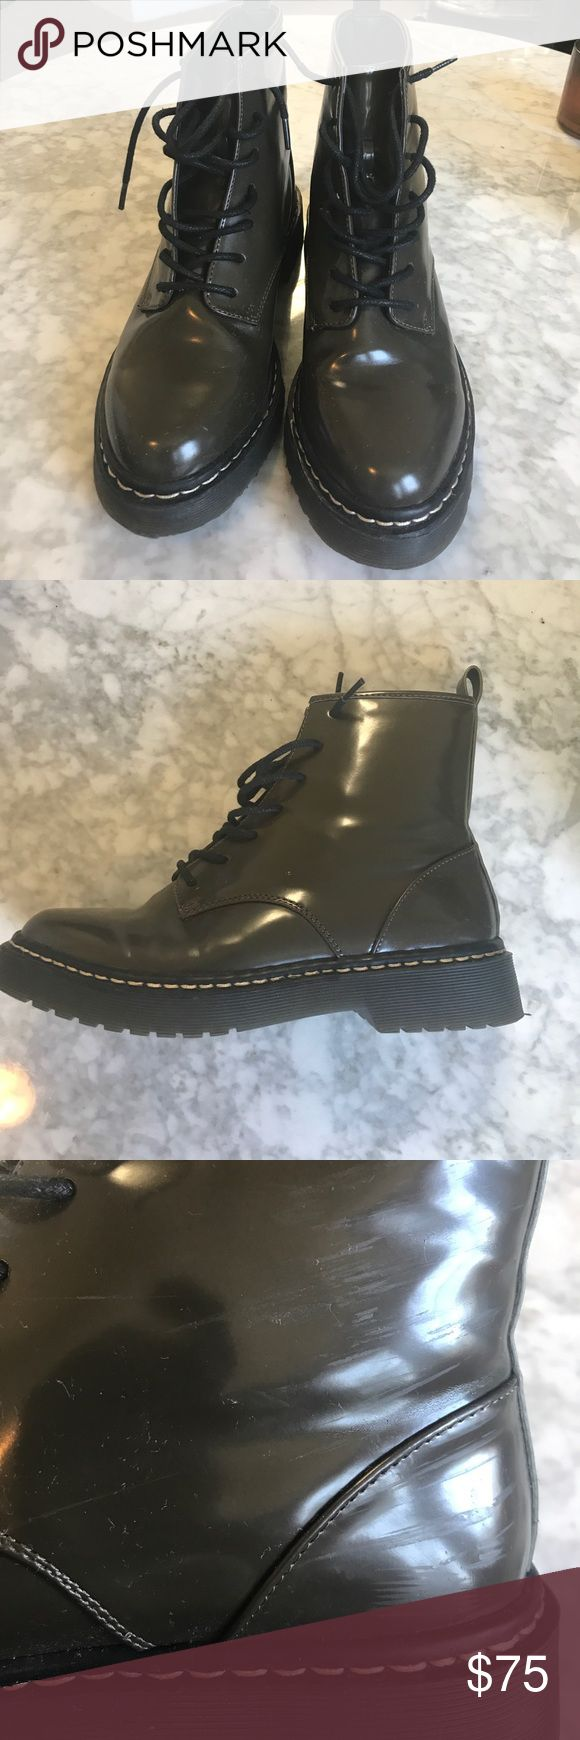 Zara combat doc marten boots Zara olive green combat boots in patent leather. Slight scuff on the inside of each heel but I've only worn once as part of a costume so like near new condition. Looking to sell so make me an offer 🤗 Zara Shoes Combat & Moto Boots